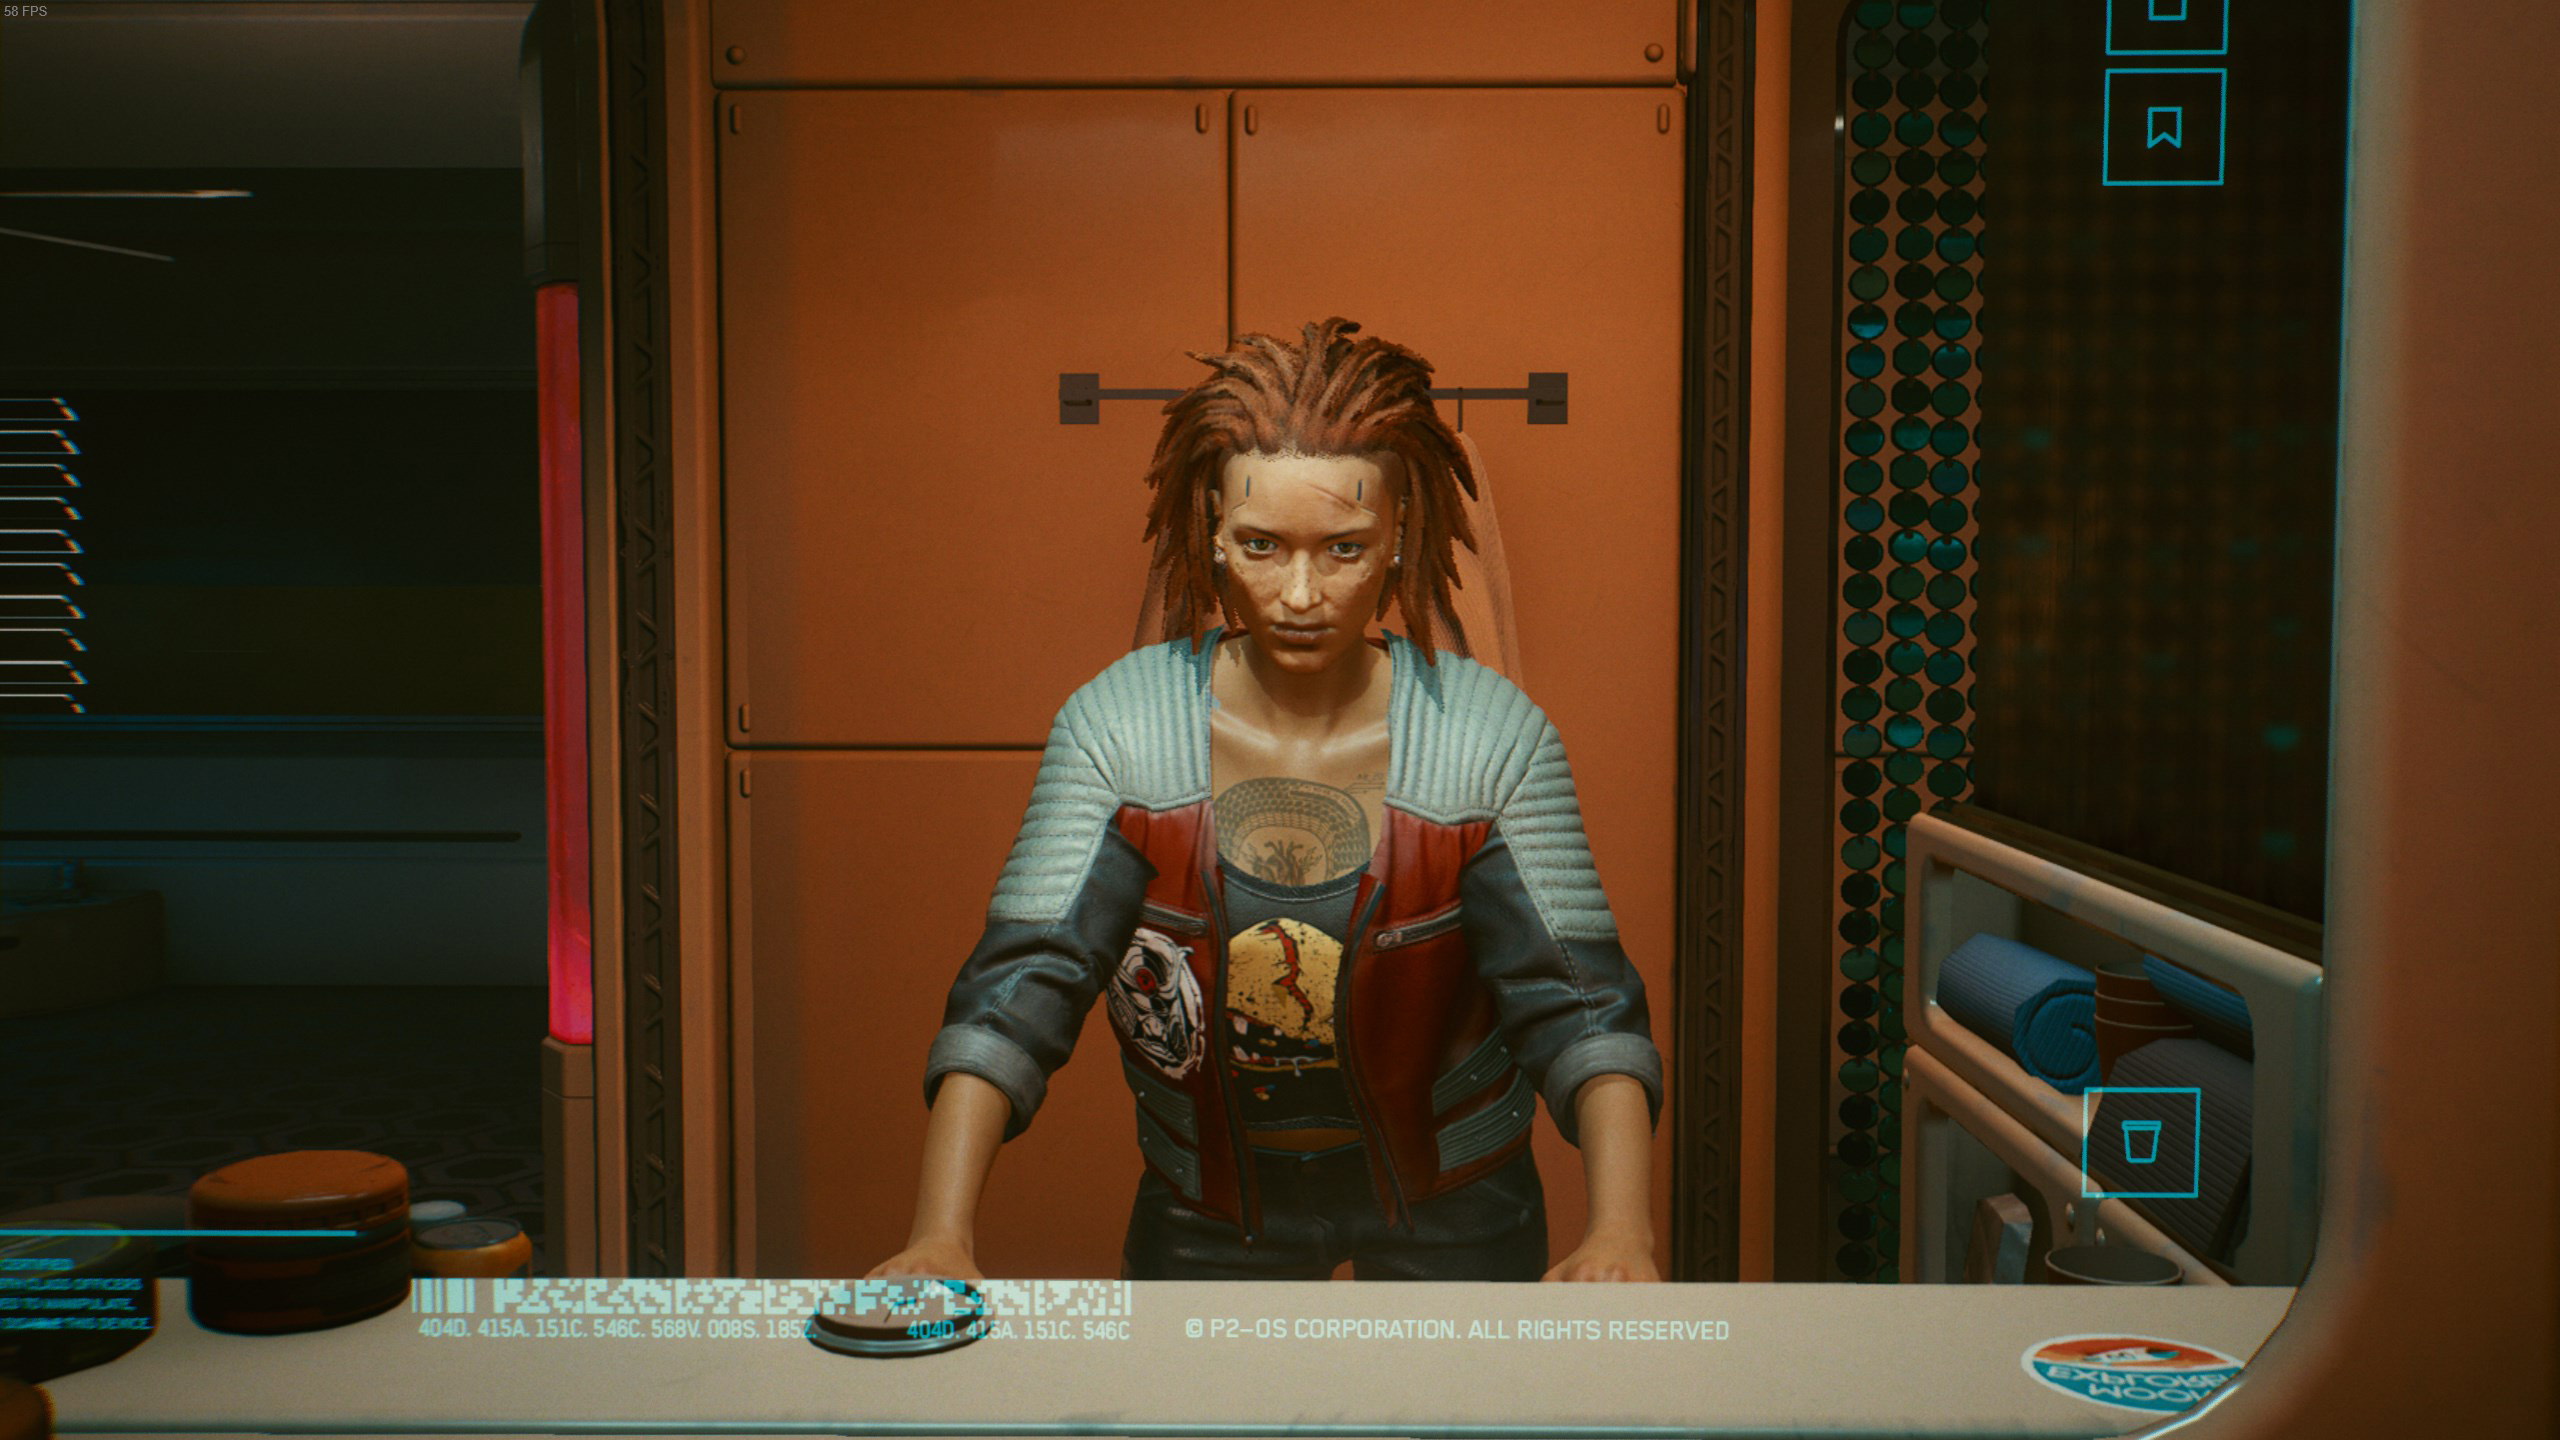 Can you change appearance in Cyberpunk 2077?